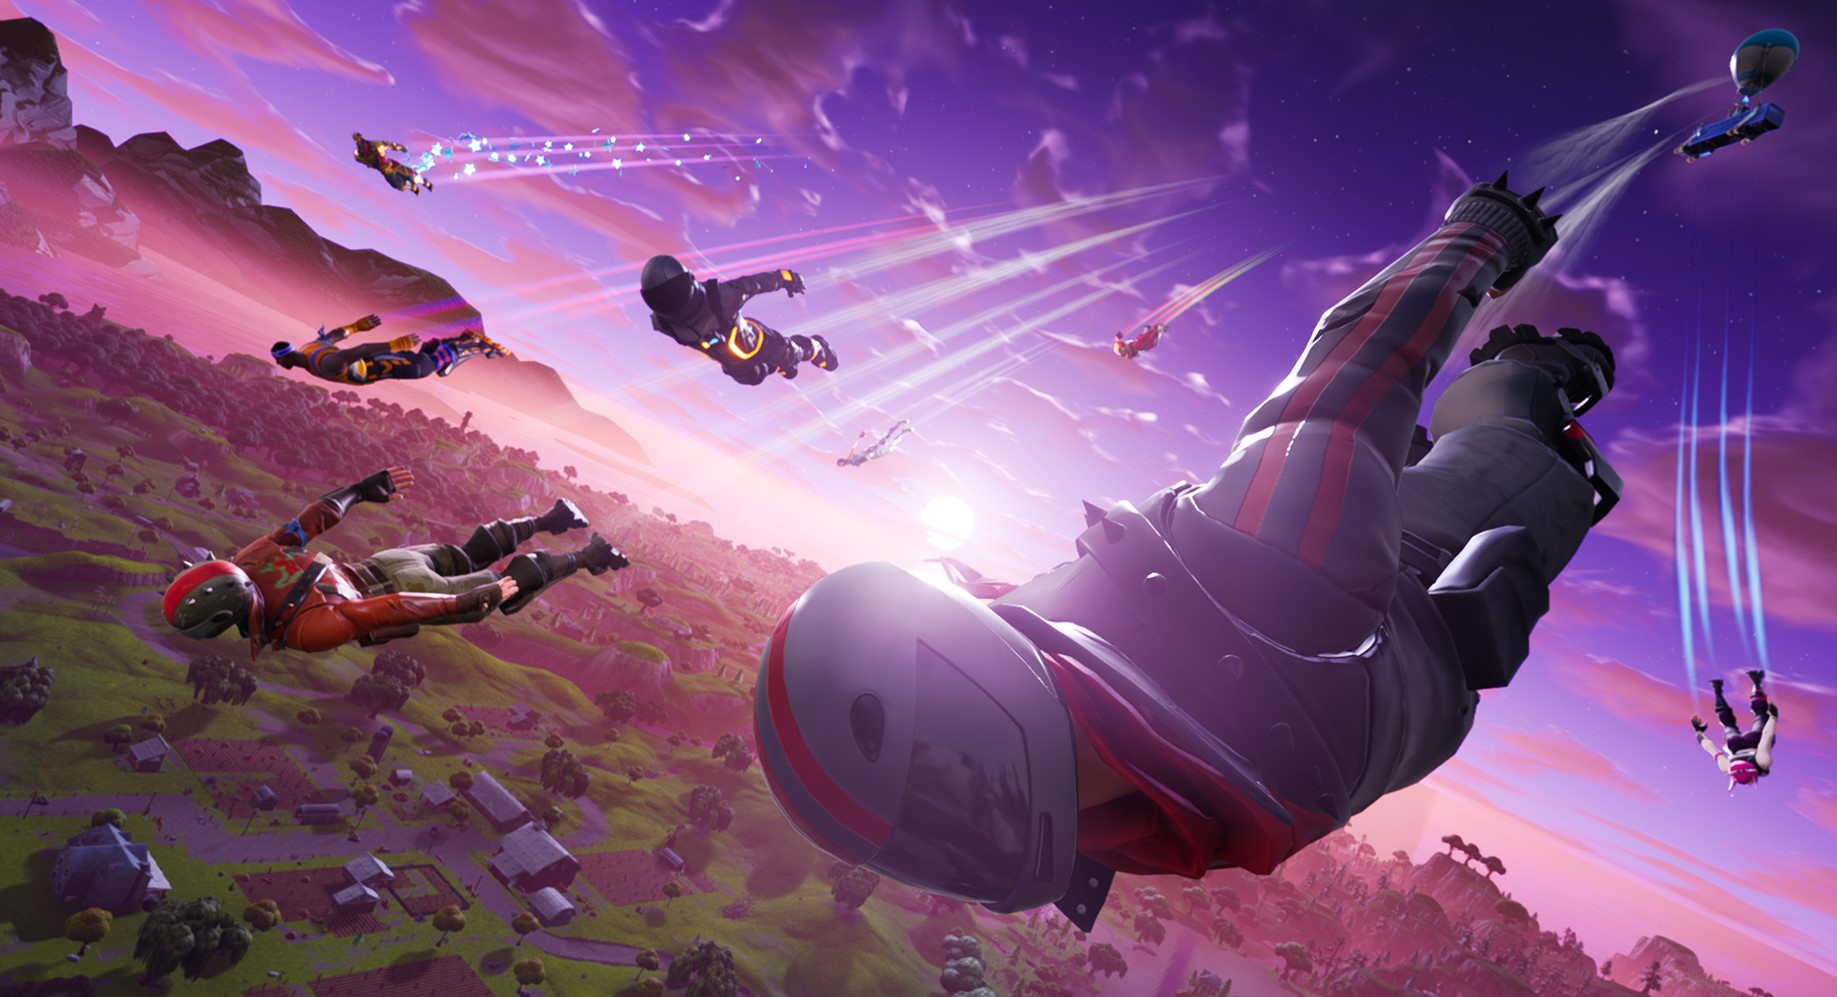 Ps5 And Xbox Series X Get Unreal Engine Support For Next Gen Fortnite And More T3